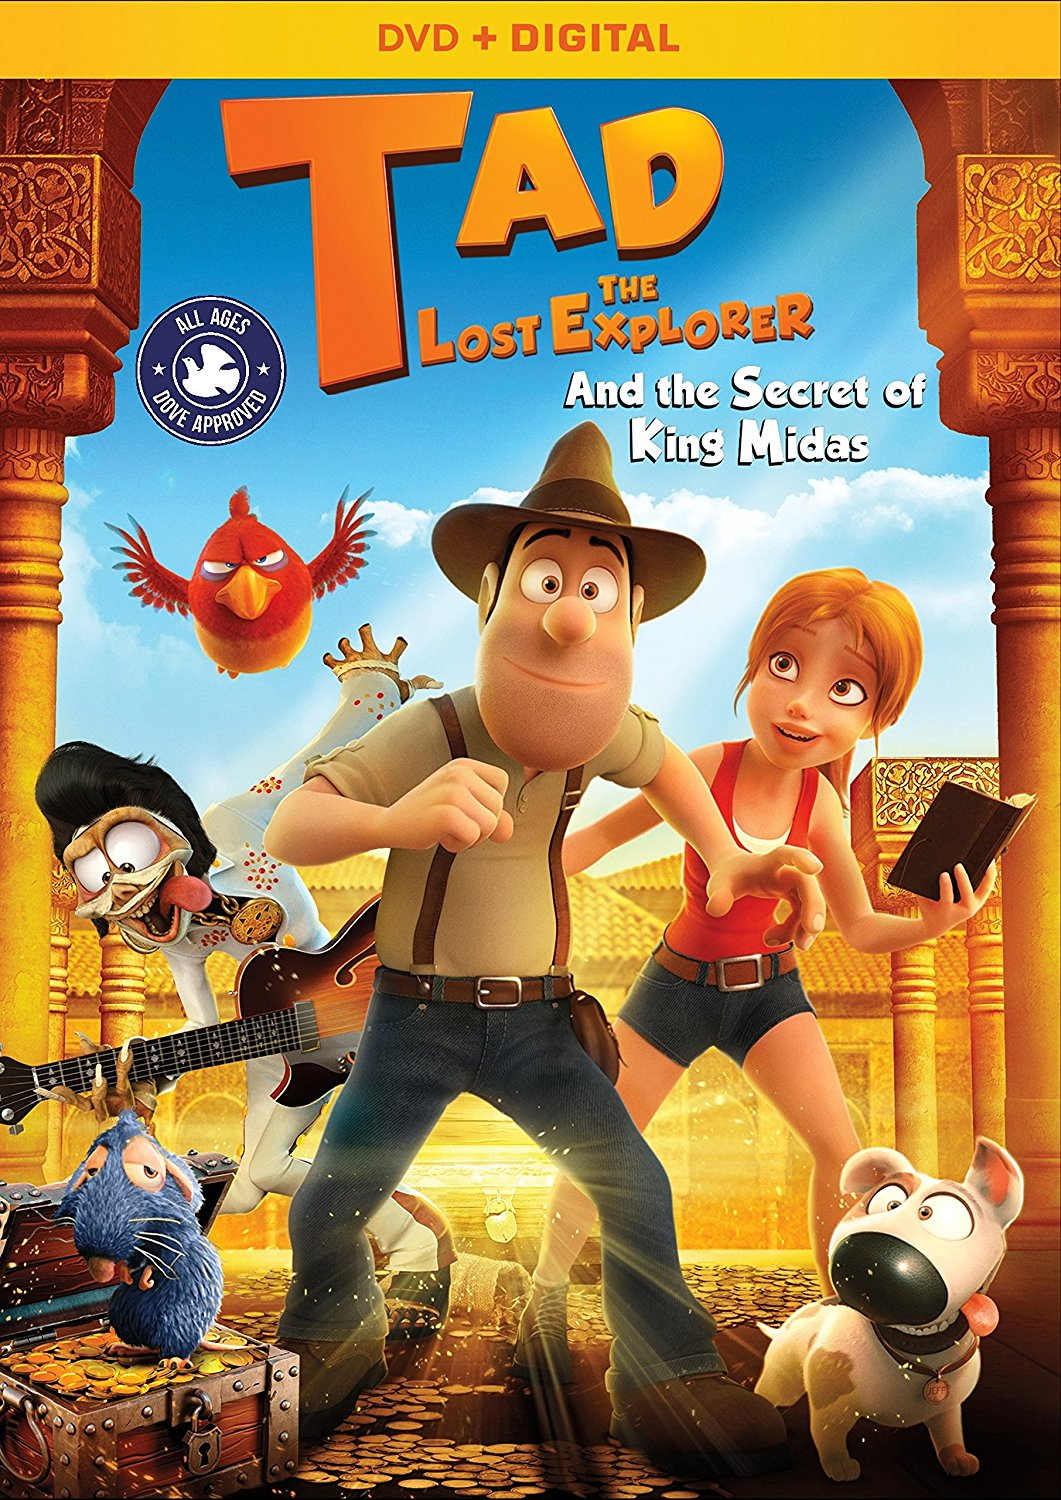 Tad, The Lost Explorer and the Secret of King Midas DVD Review